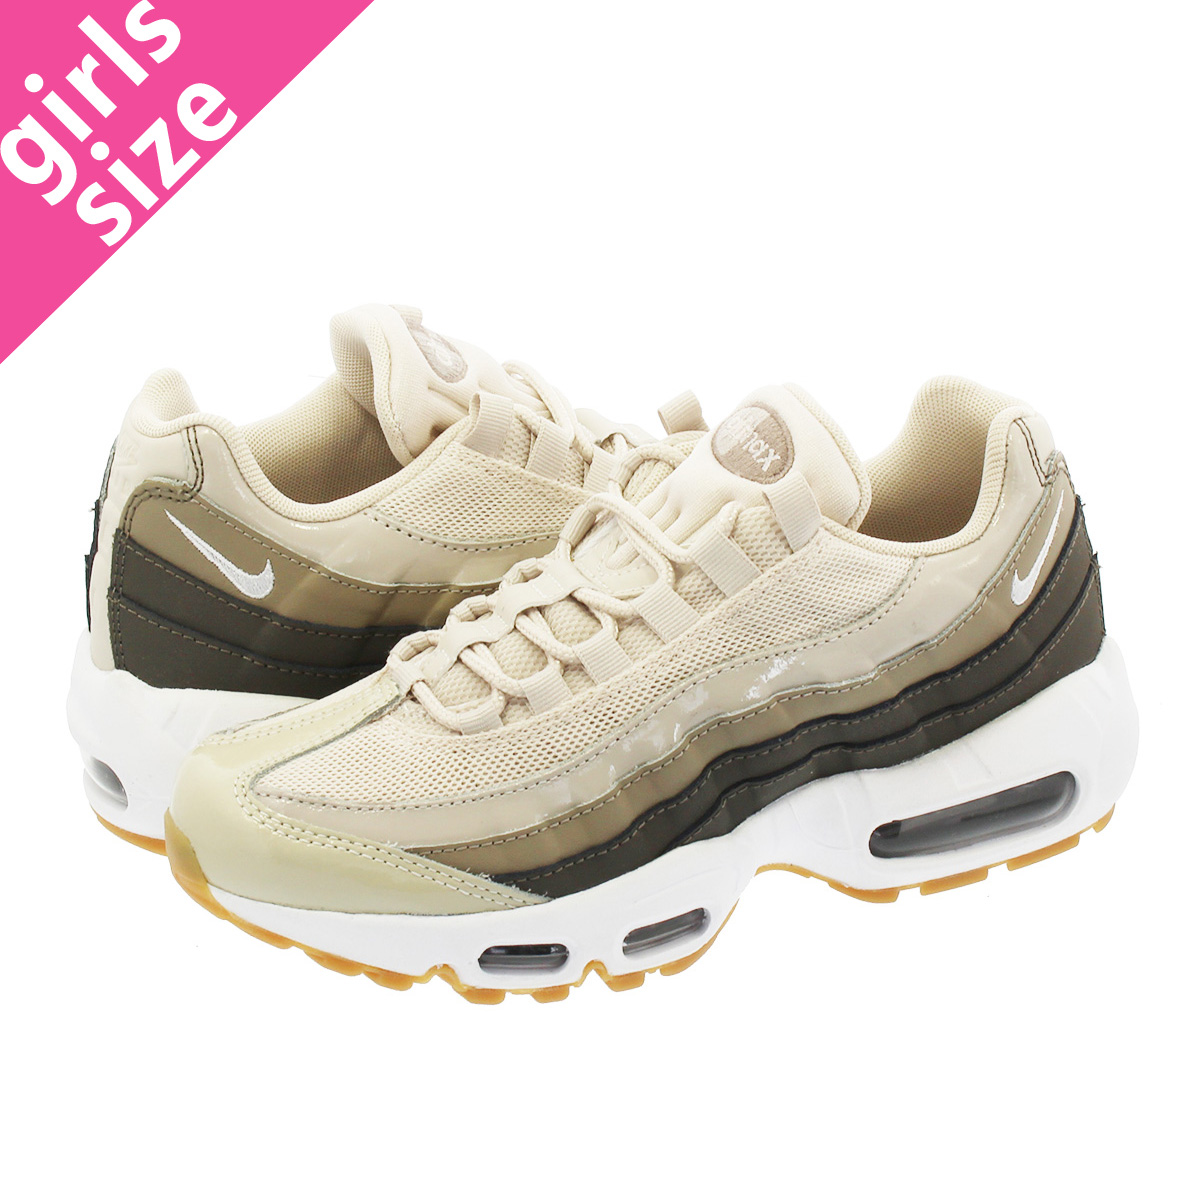 182e186fb3 Categories. « All Categories · Shoes · Women's Shoes · Sneakers · NIKE WMNS AIR  MAX 95 Nike women Air Max 95 DESERT SAND/MOON PARTICLE SEPIA